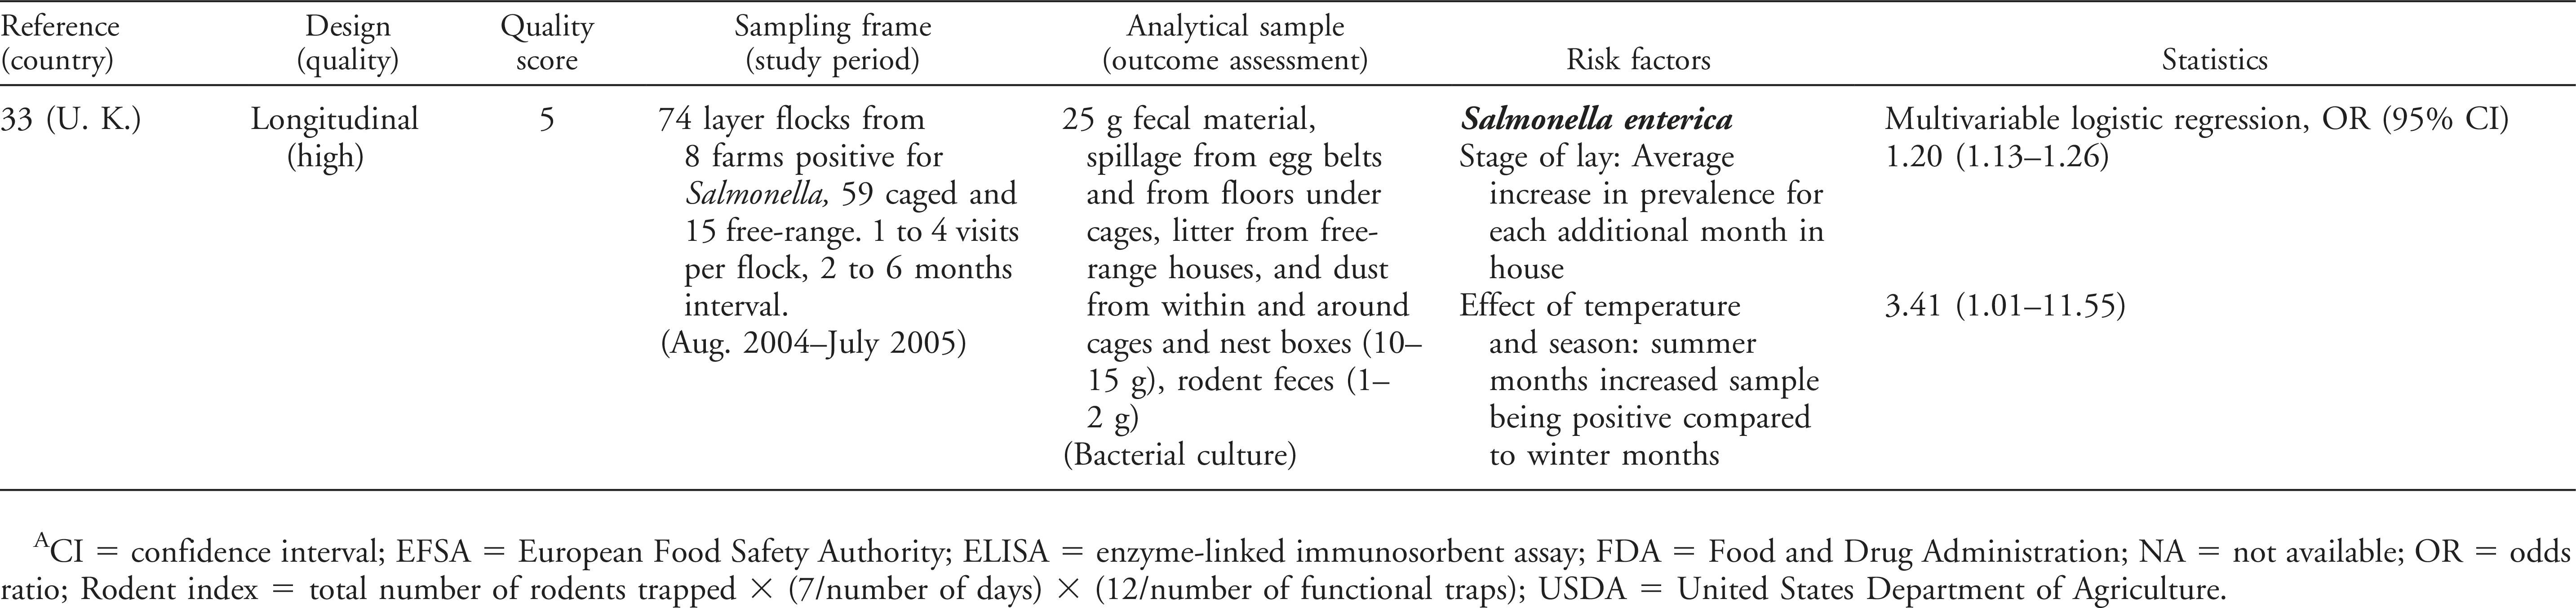 Risk Factors Associated With Salmonella in Laying Hen Farms